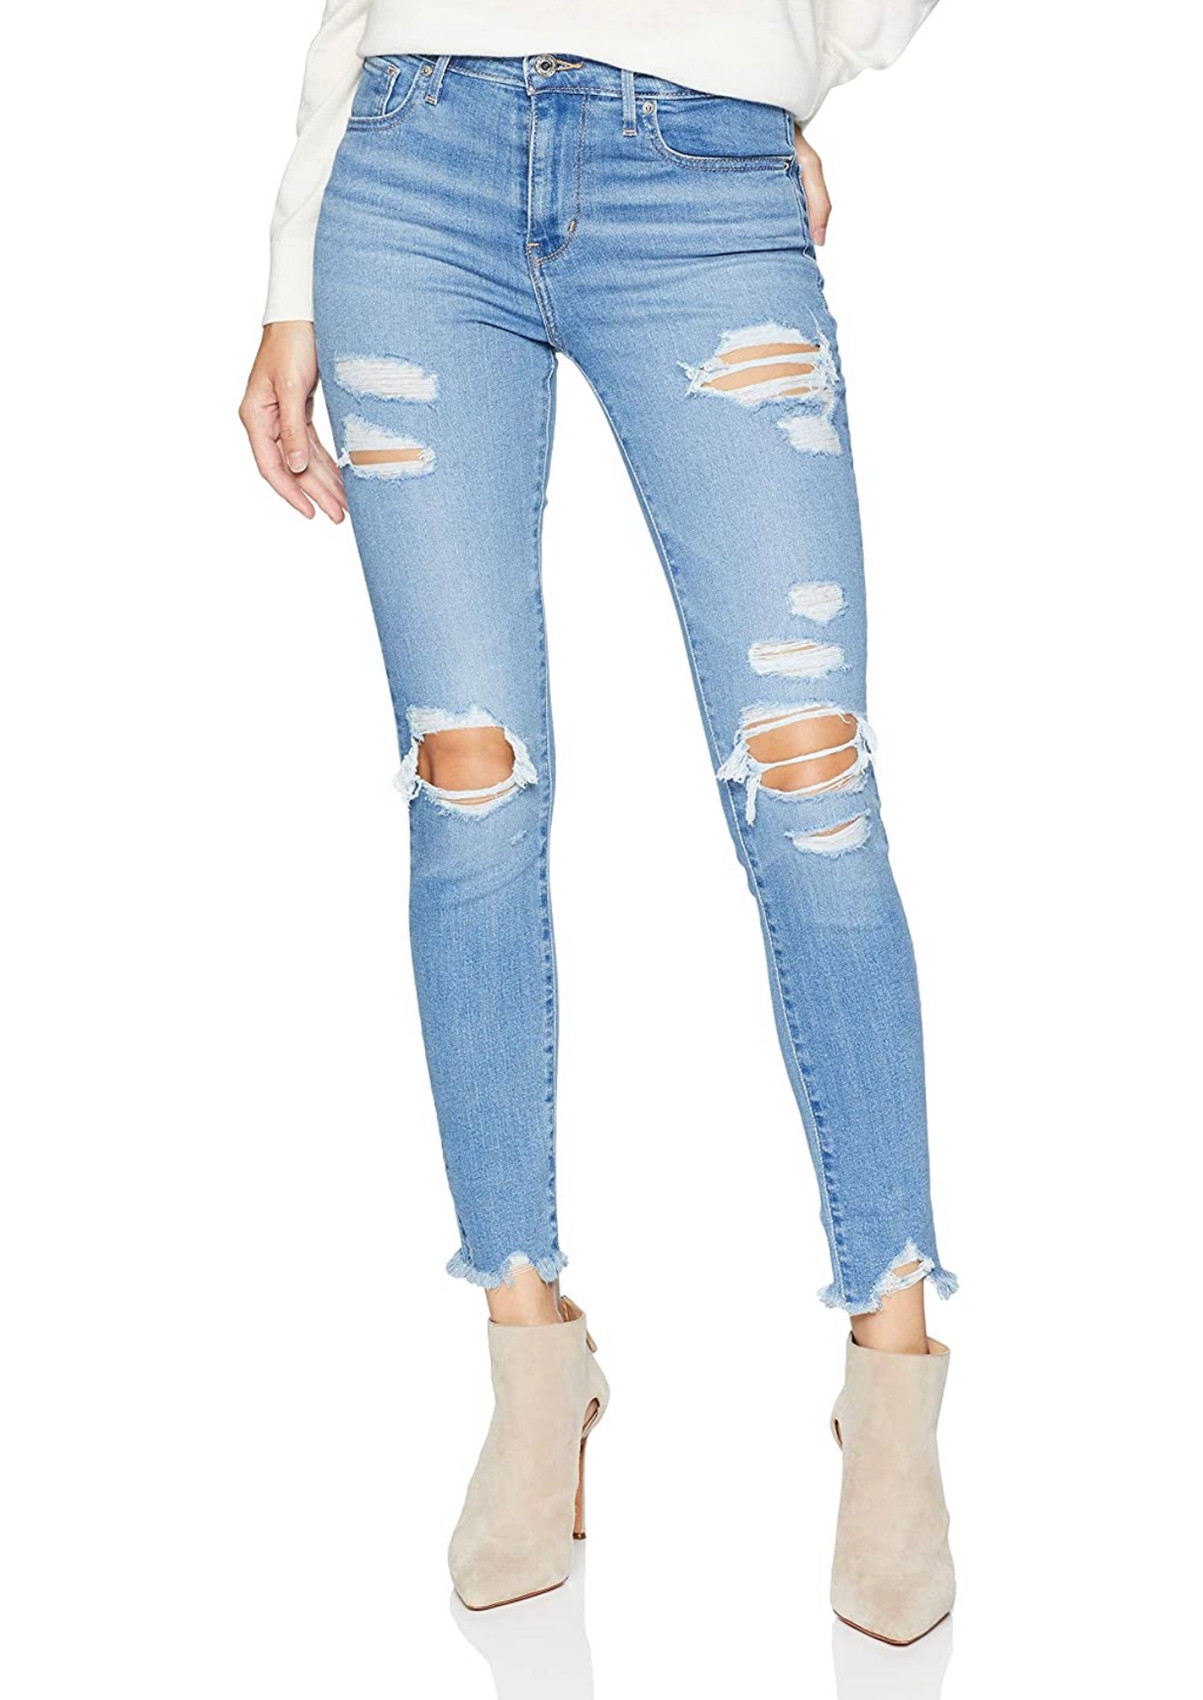 Levi's 721 Distressed Ankle Jeans